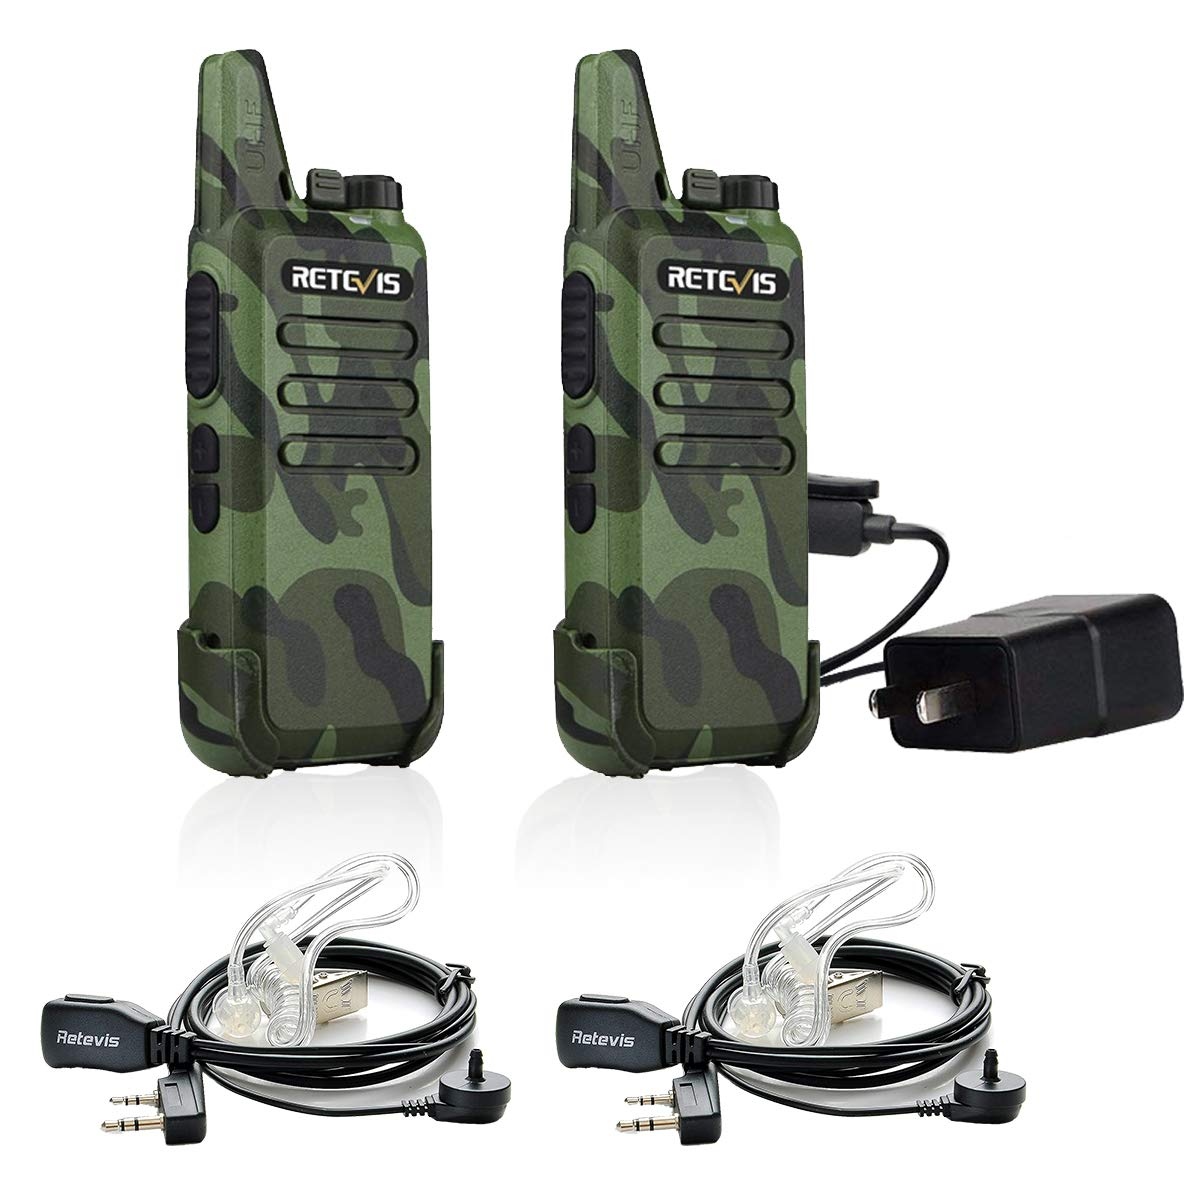 Retevis RT22 Walkie Talkies FRS Rechargeable UHF 16 CH VOX Emergency Security Outdoor 2 Way Radios with Earpiece 2 Pin Covert Air Acoustic ( 2 Pack) by Retevis